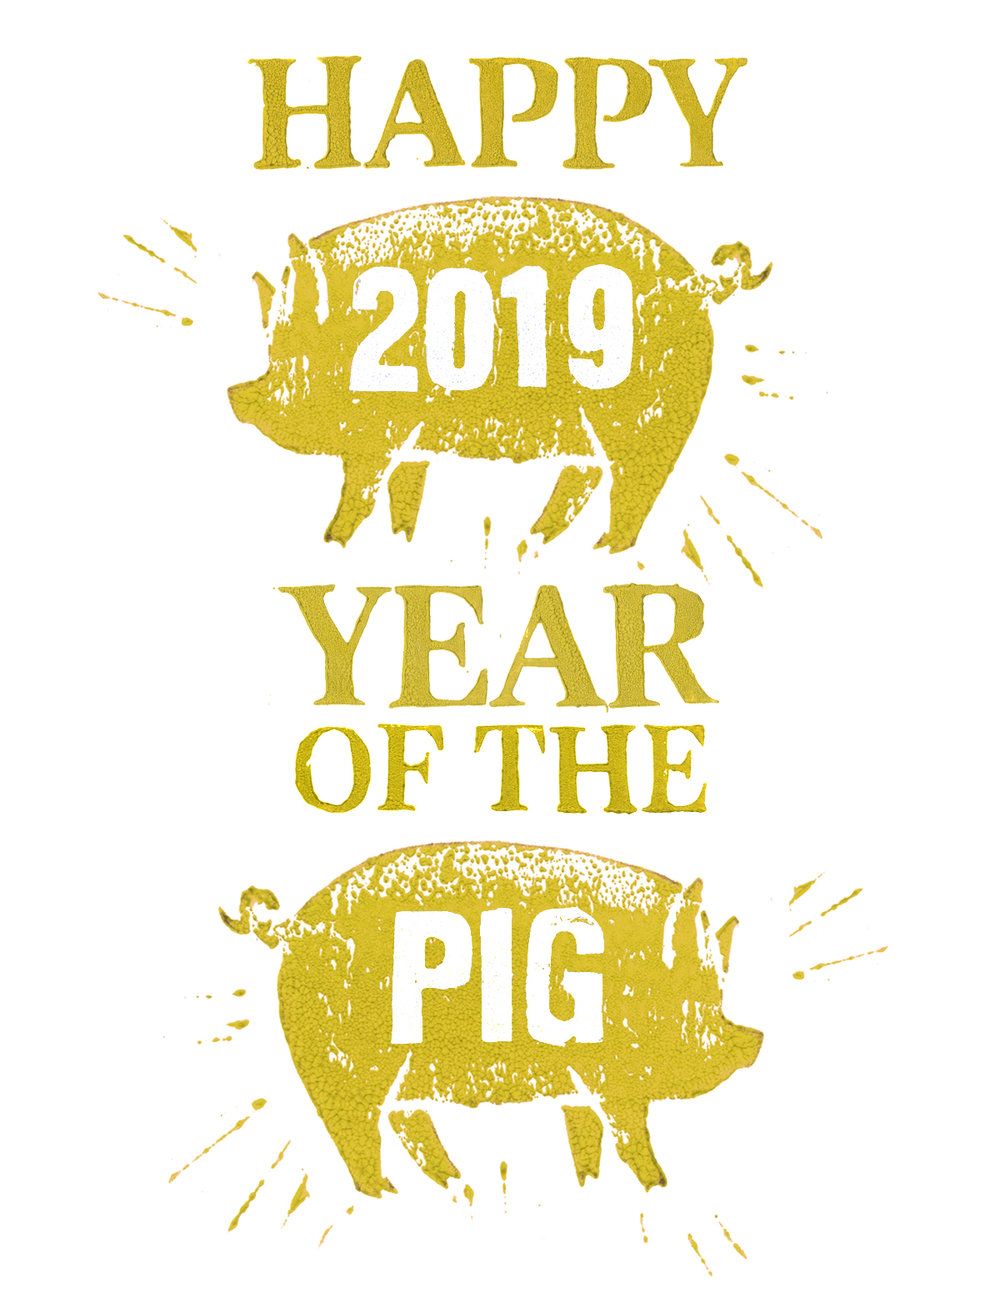 2019 year of the pig_lg.jpg